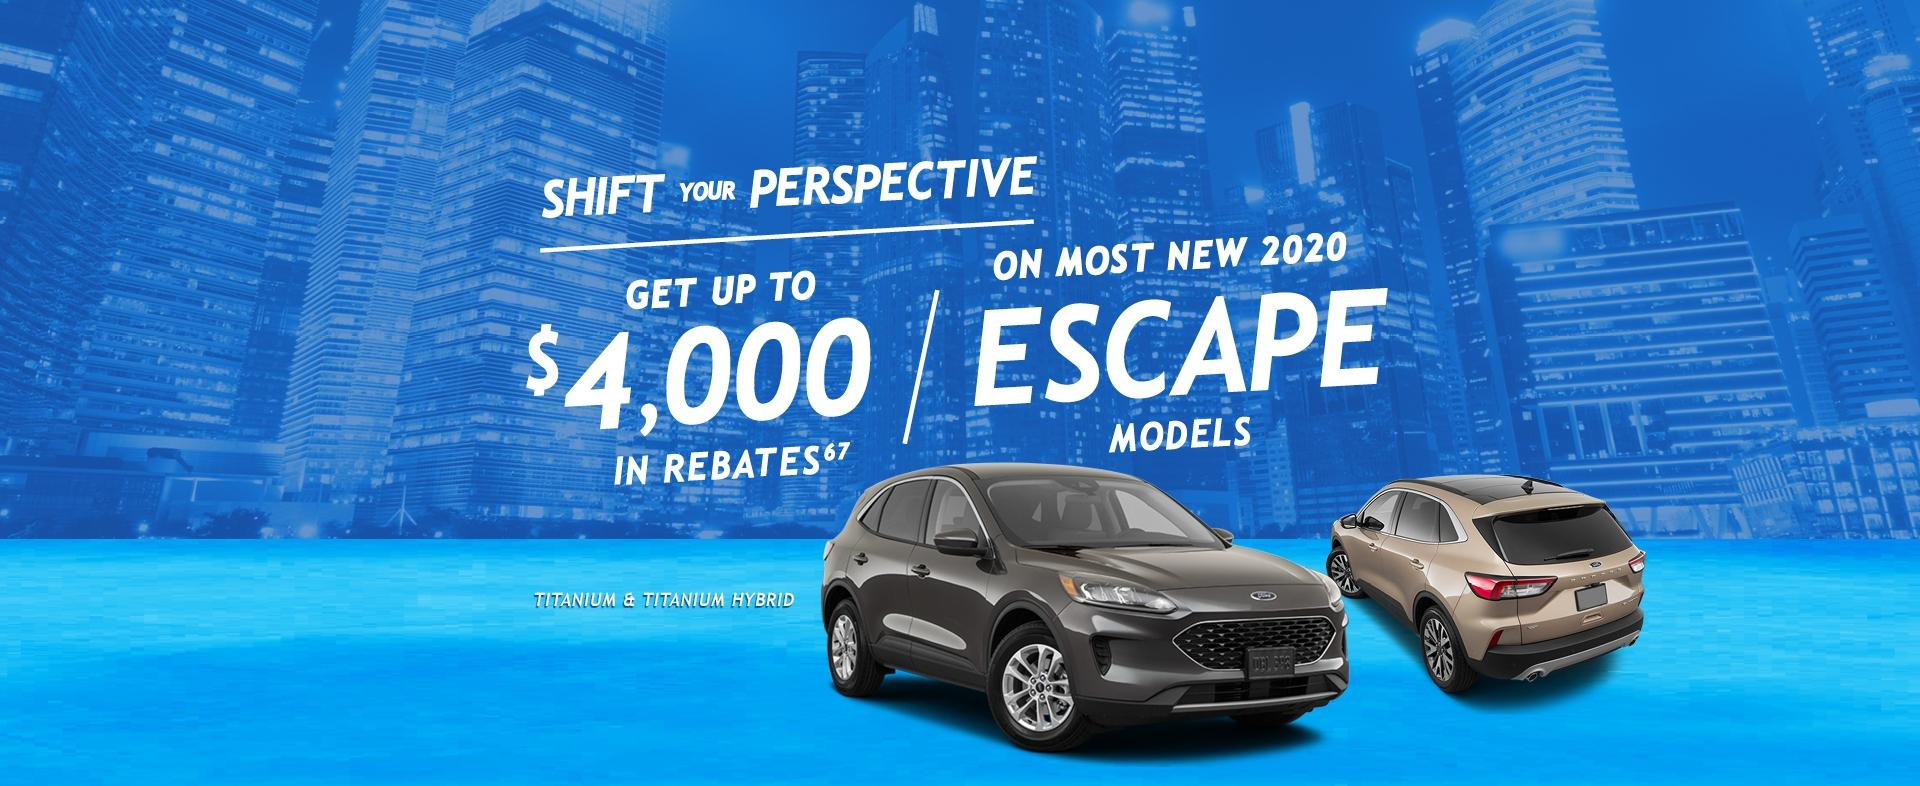 get up to $4000 off Escape Models